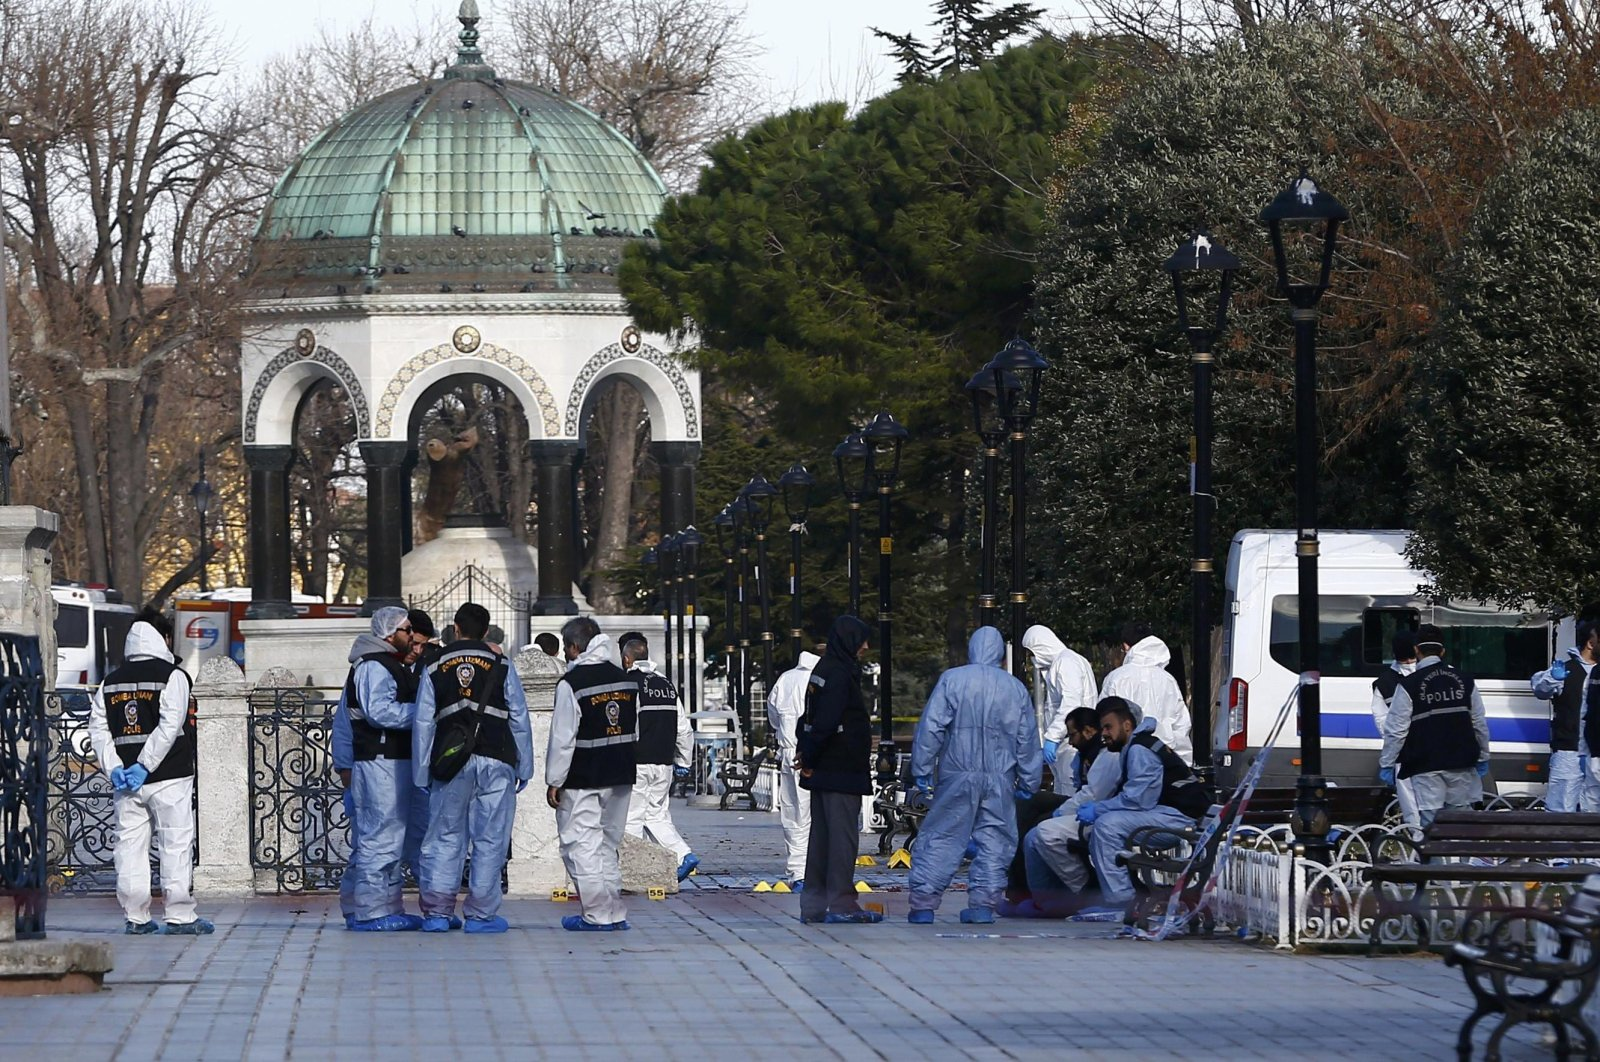 Police forensic officers attend the scene after an explosion in front of the German Fountain in Sultanahmet Square in Istanbul, Turkey, Jan. 12, 2016. (Reuters Photo)